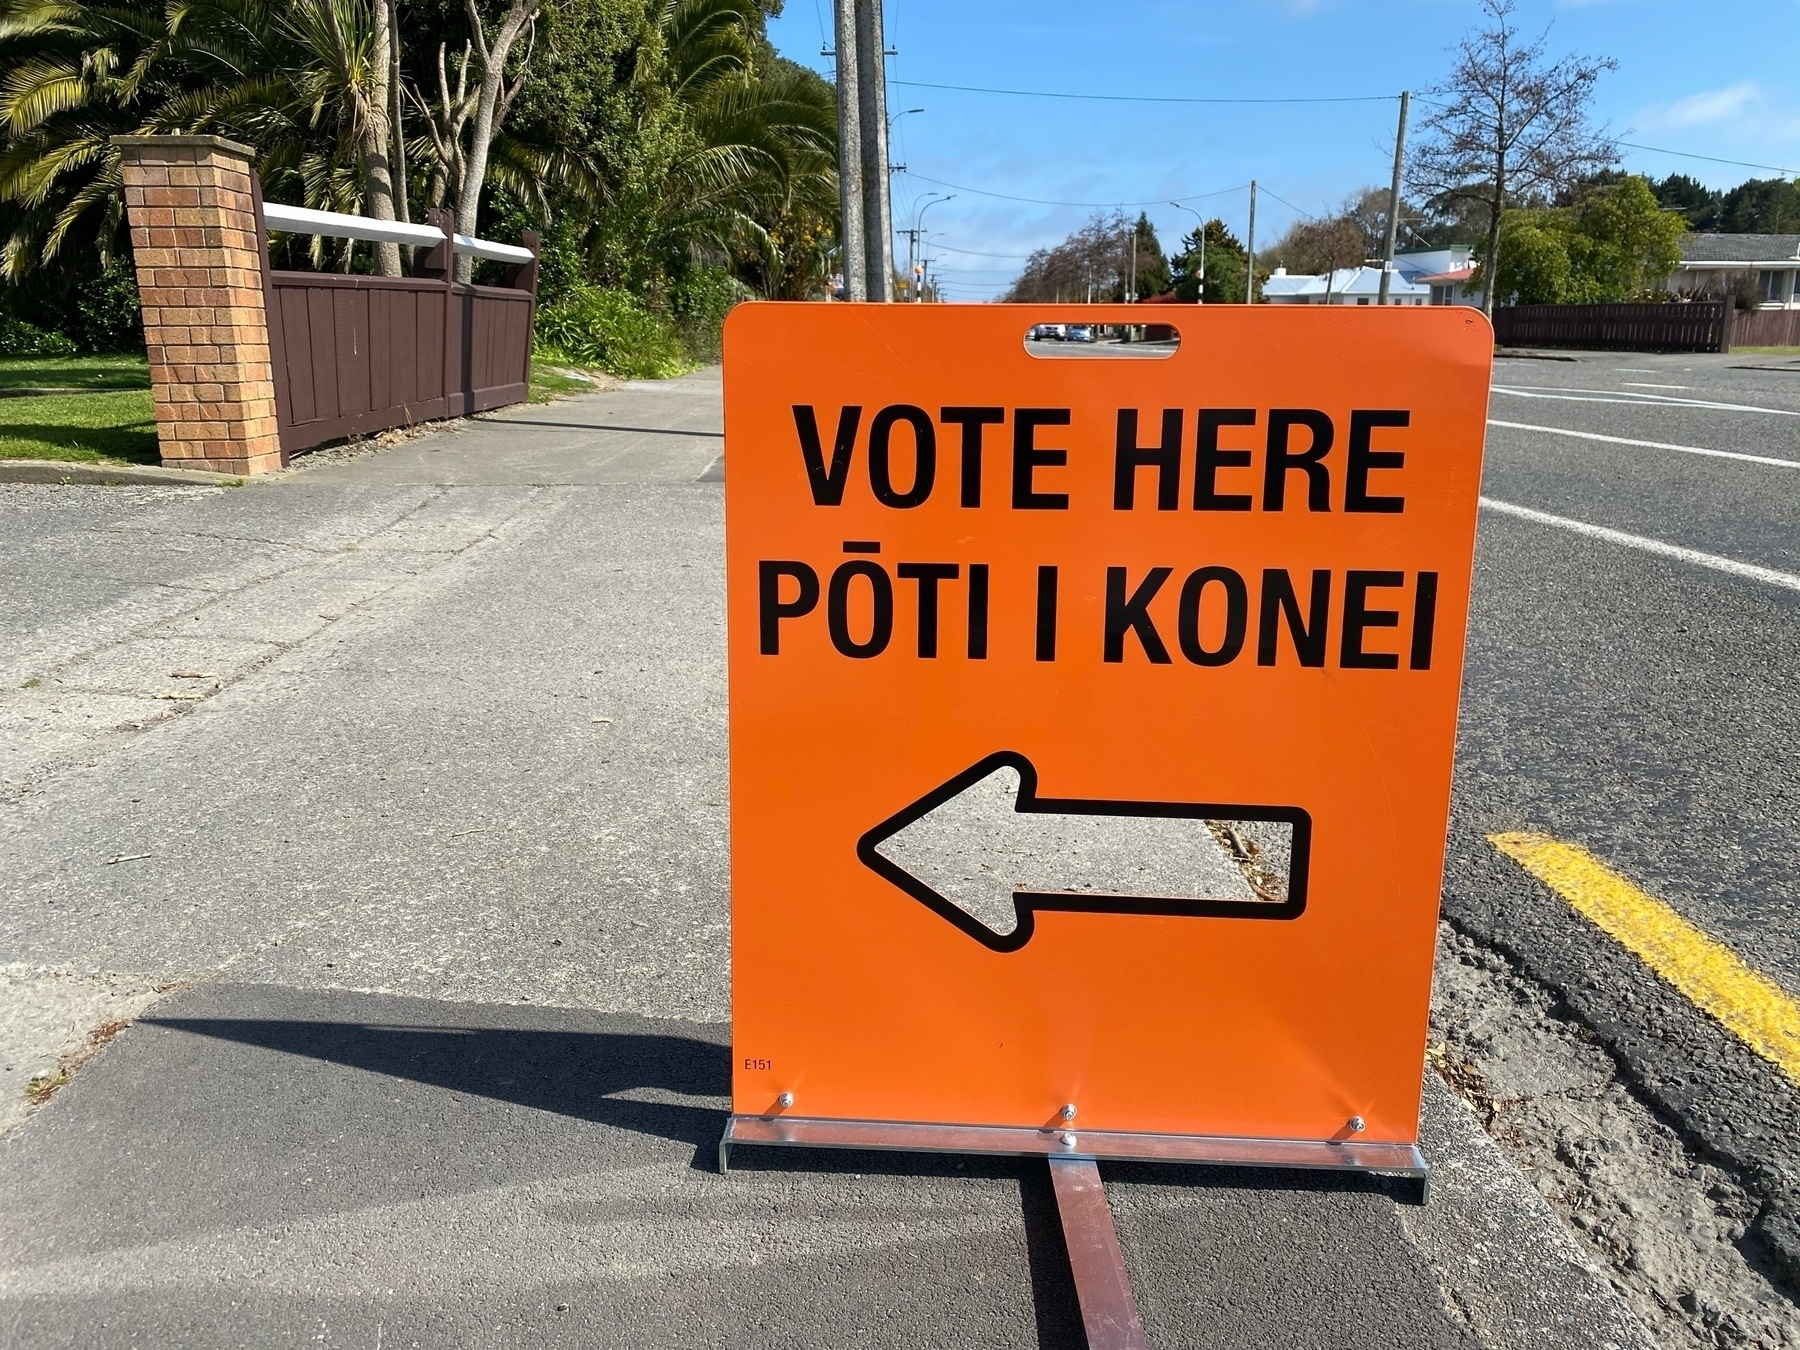 Polling booth sign.